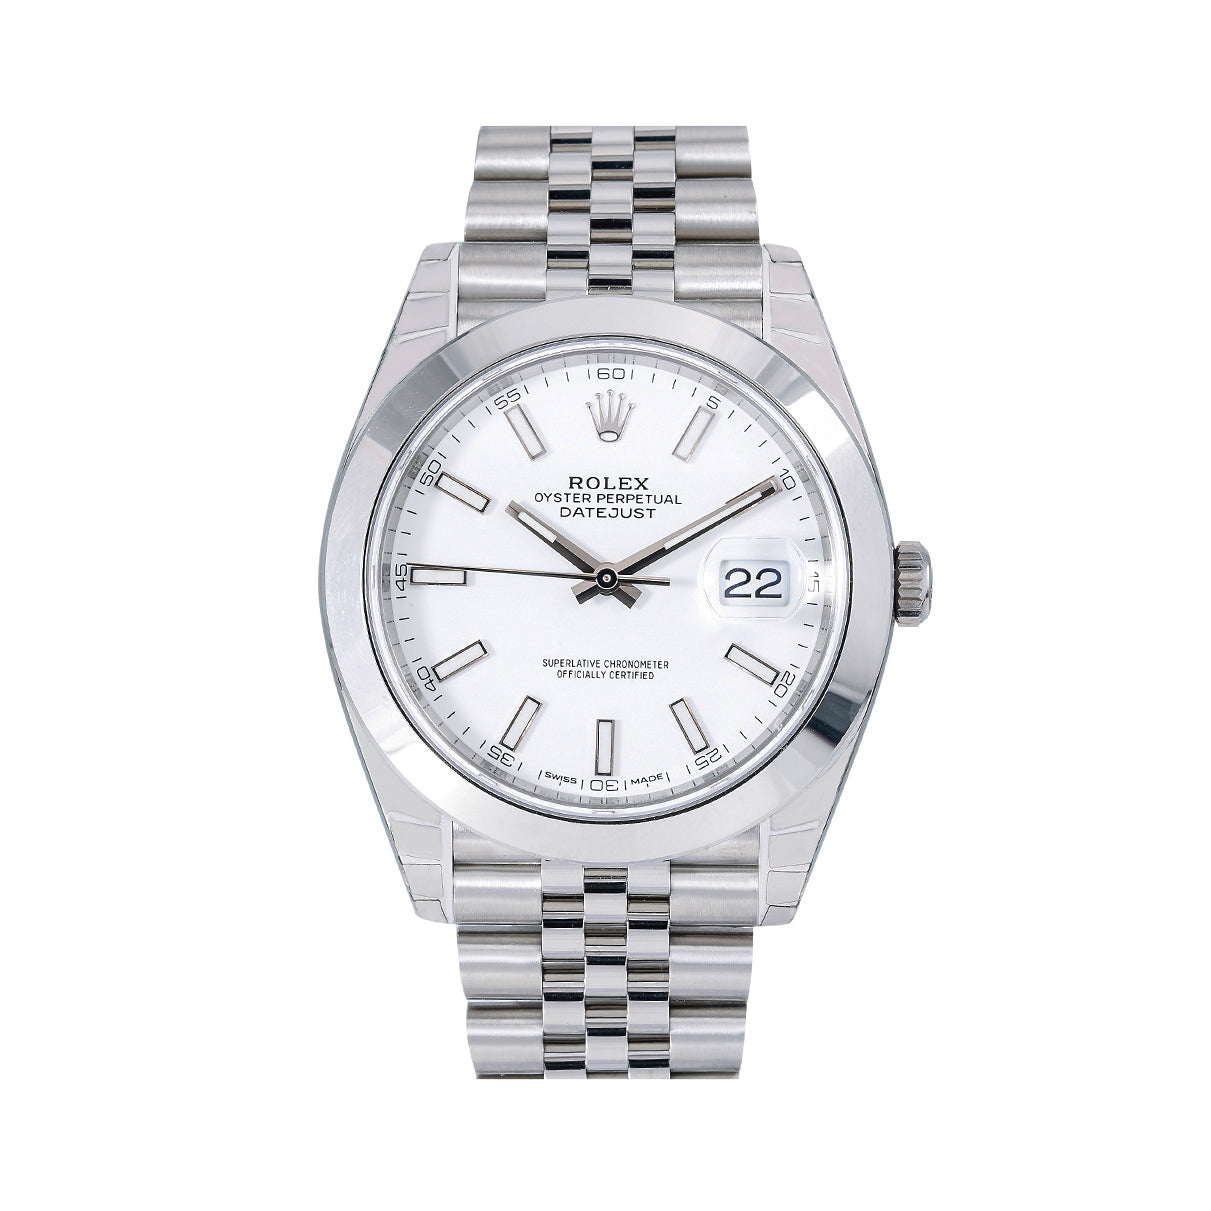 Rolex Datejust 126300 41MM White Dial With Stainless Steel Jubilee Bracelet